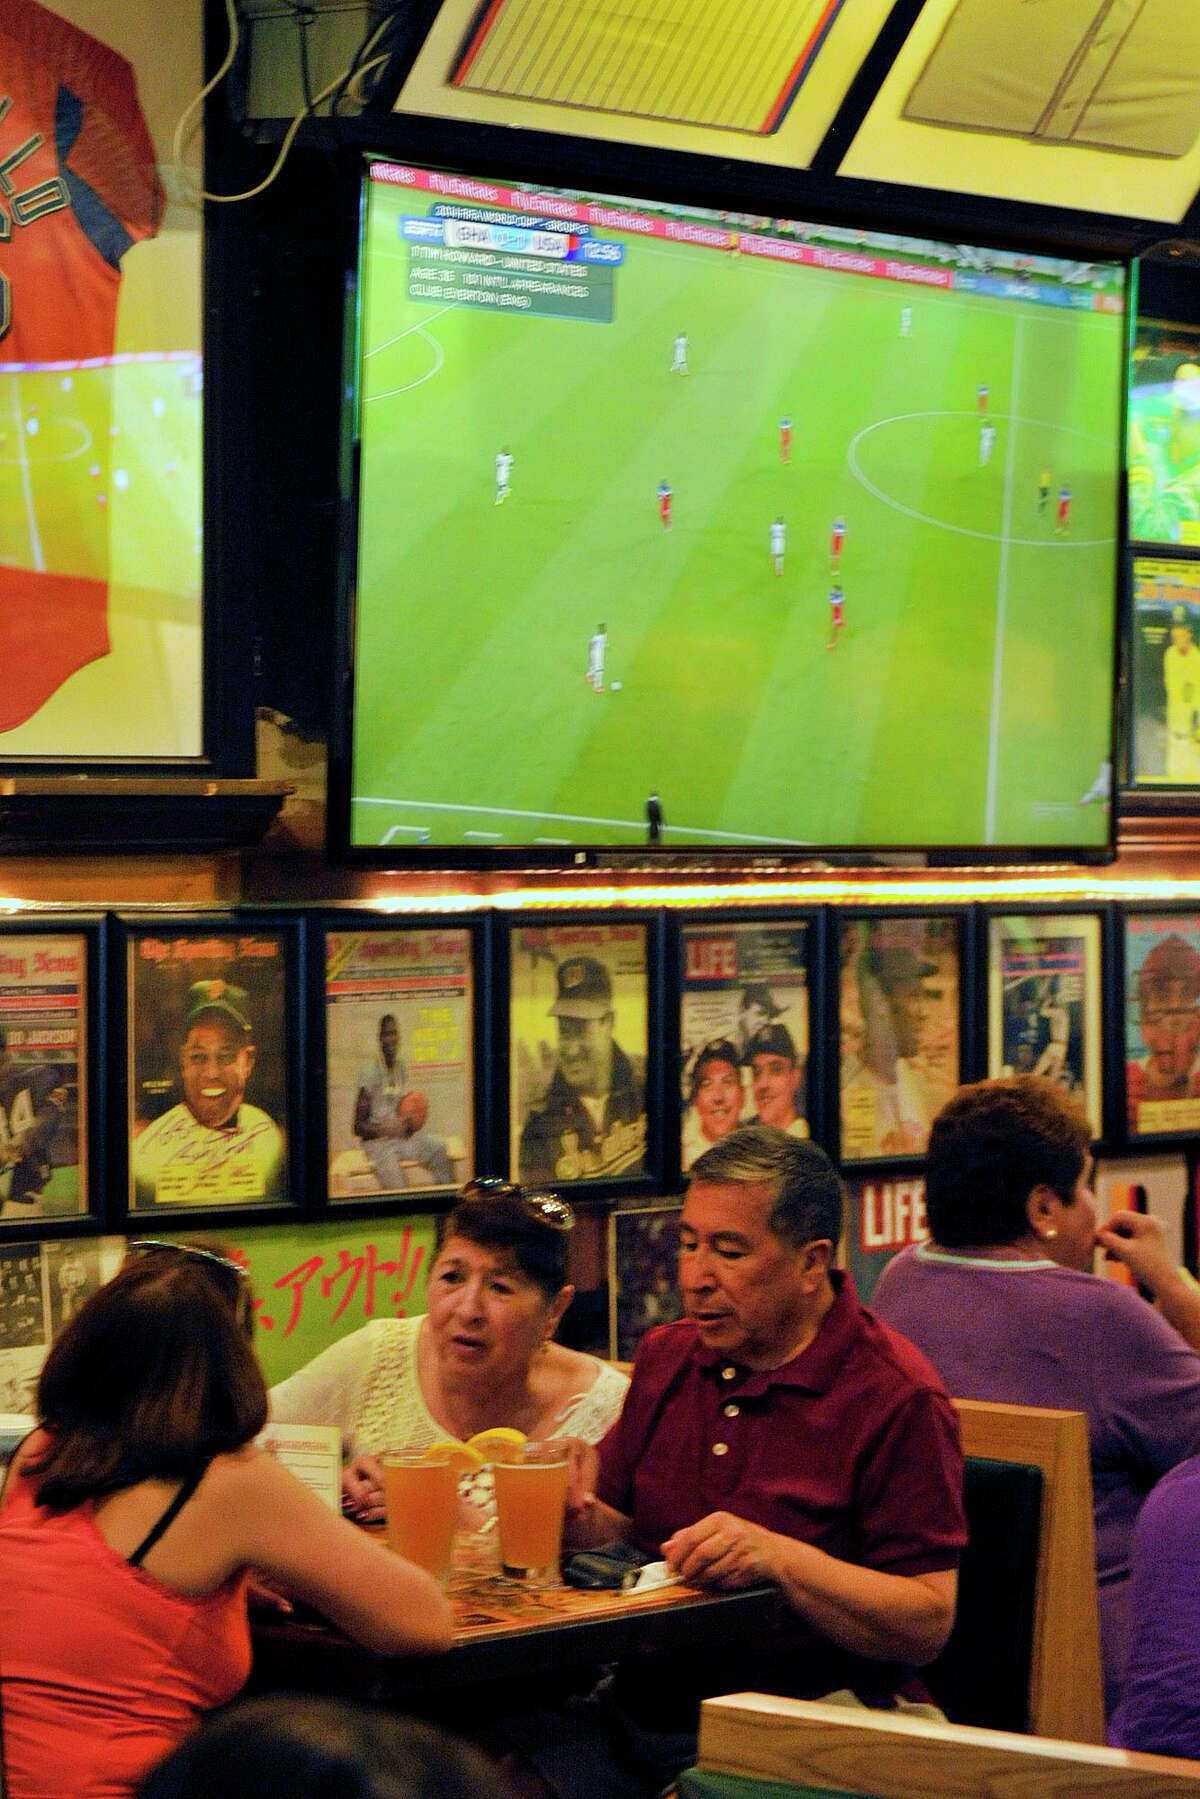 during the USA versus Ghana World Cup first round game at Bobby V's Sports Bar in Stamford, Conn., on Monday, June 16, 2014. USA won, 2-1.